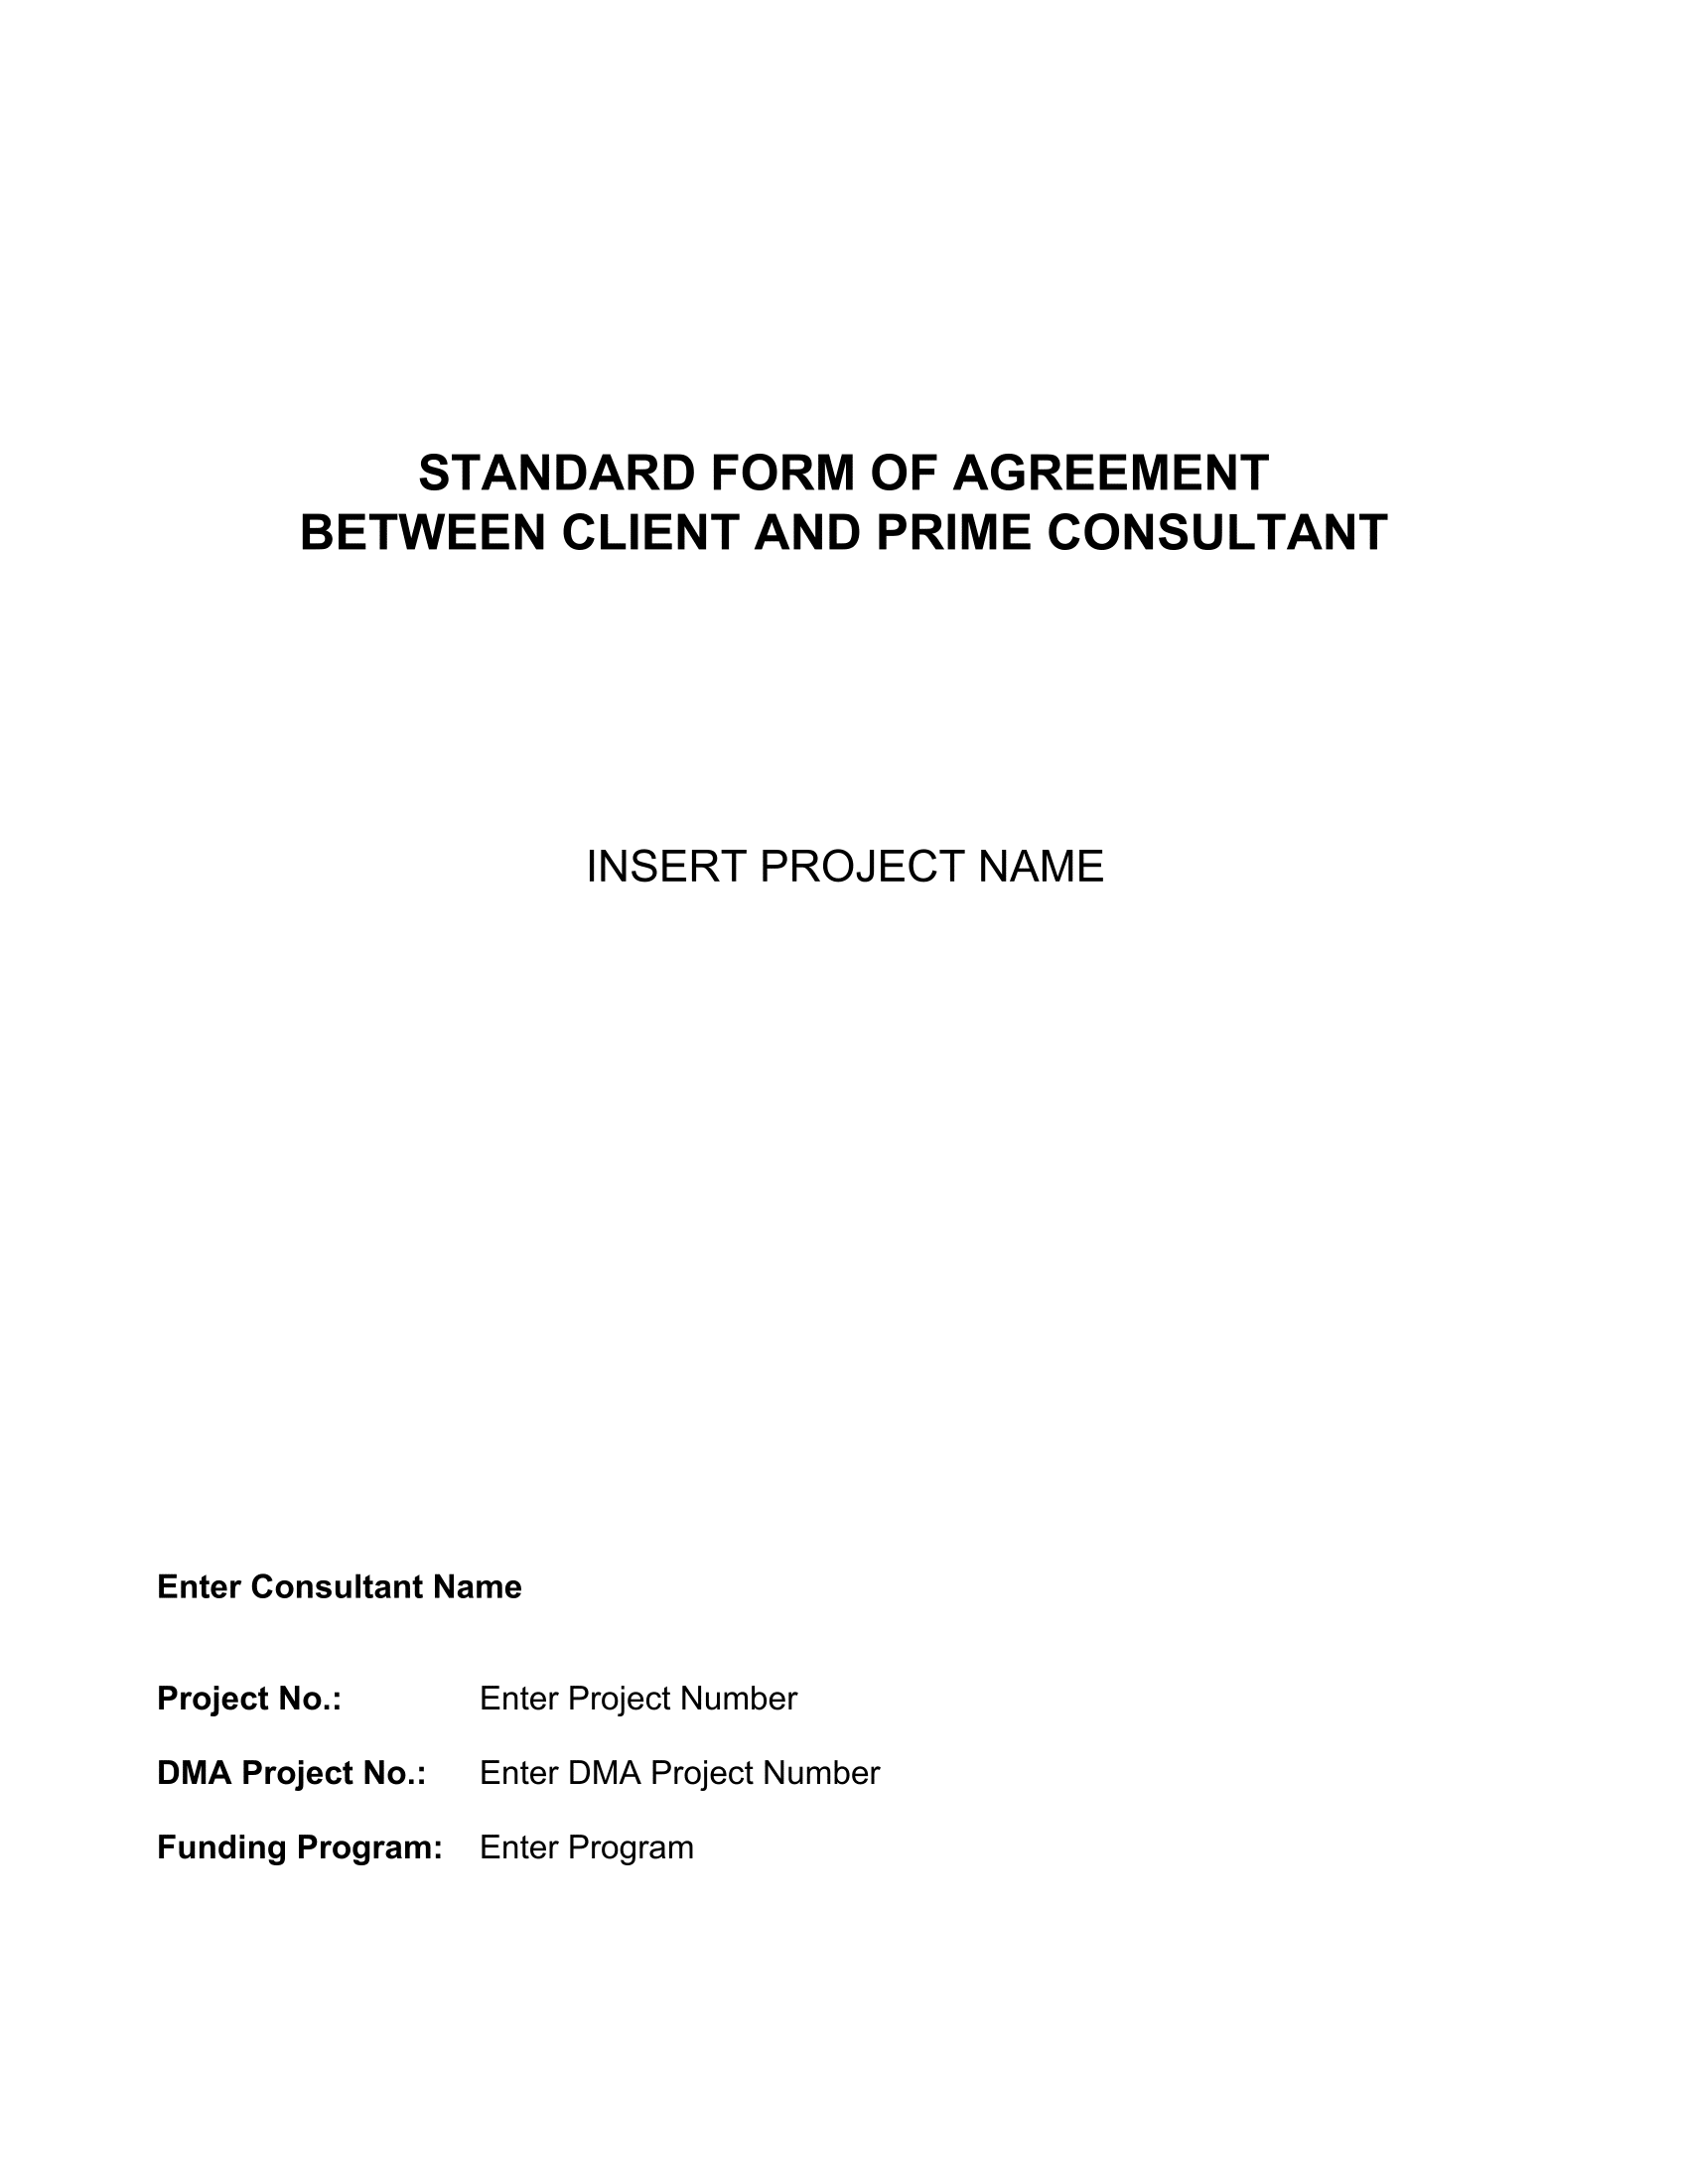 business contract agreement between client pdf format download 01